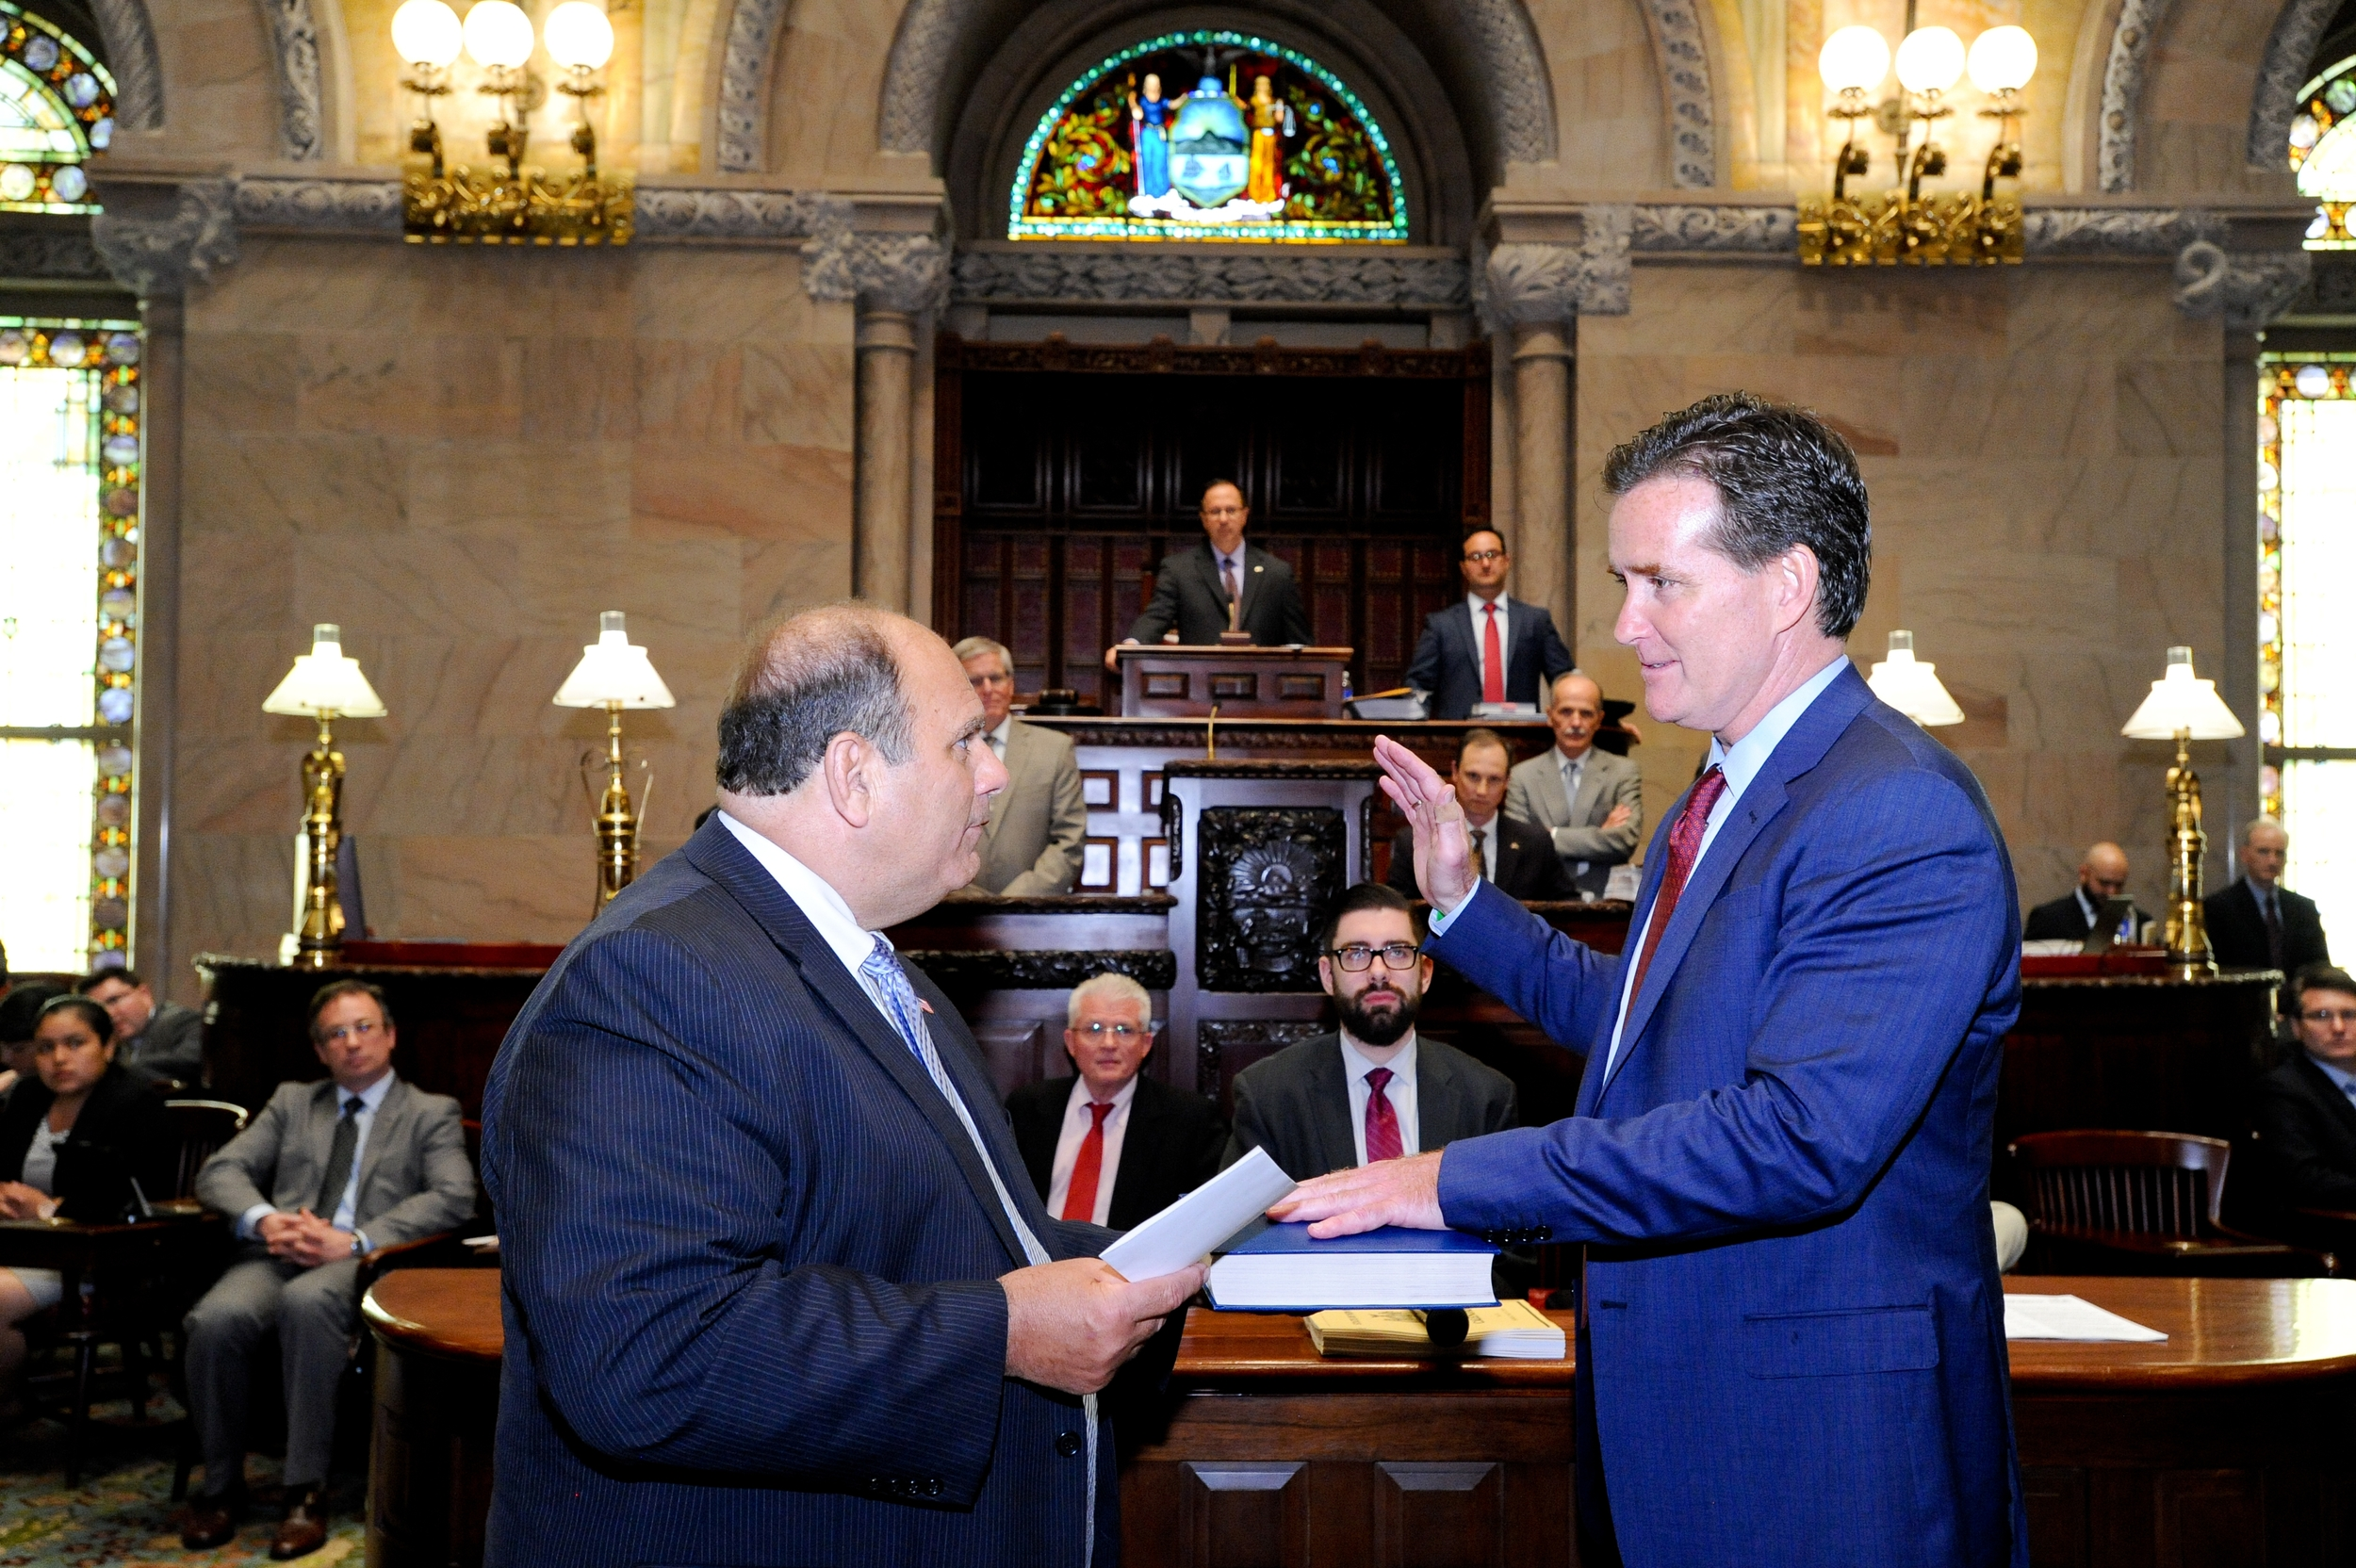 East Northport's John Flanagan is sworn in as the State Senate's new majority leader on Monday.